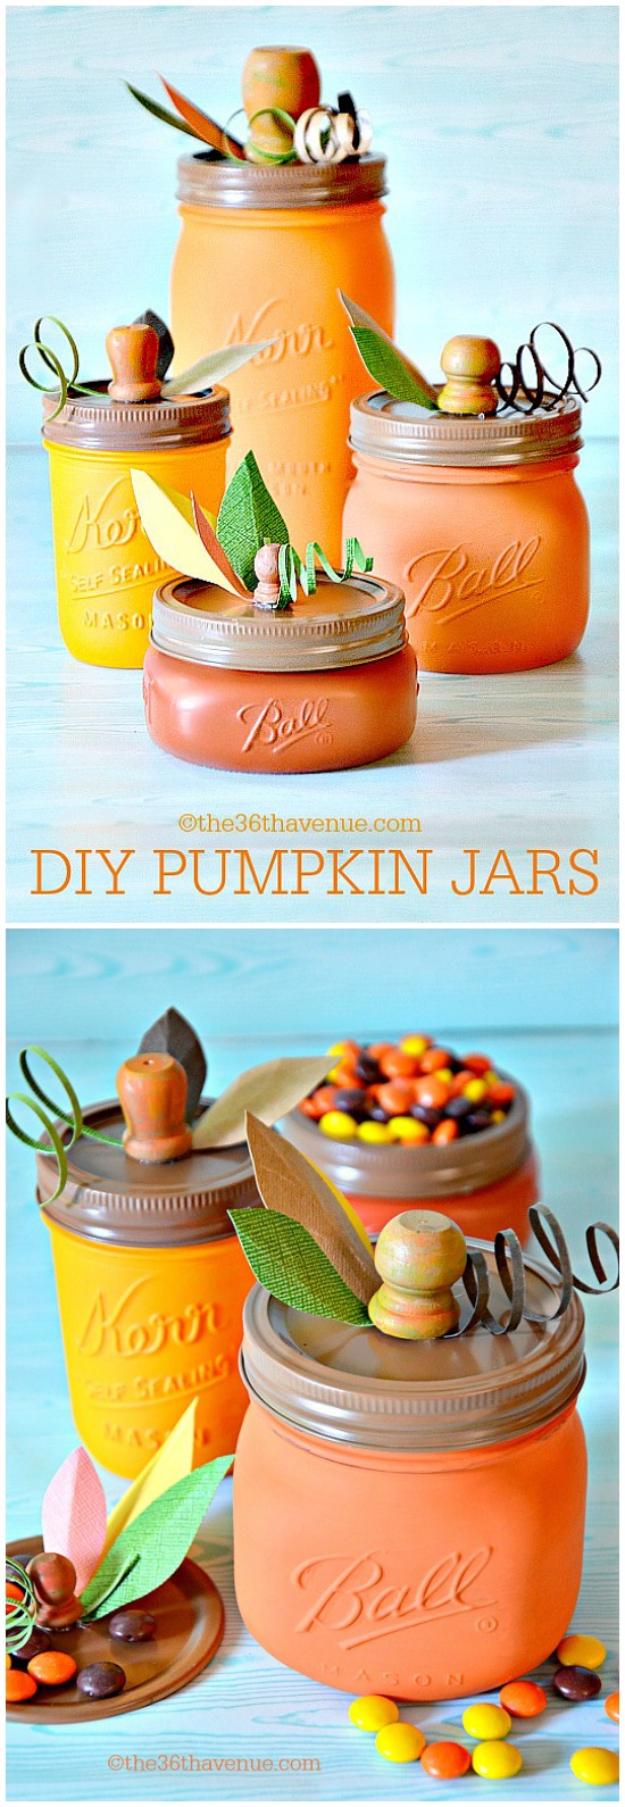 38 Best DIY Projects for Fall - DIY Pumpkin Mason Jars - Quick And Easy Projects For Fall, Fun DIY Projects To Try This Fall, Cute Fall Craft Ideas, Fall Decors, Easy DIY Crafts For Fall